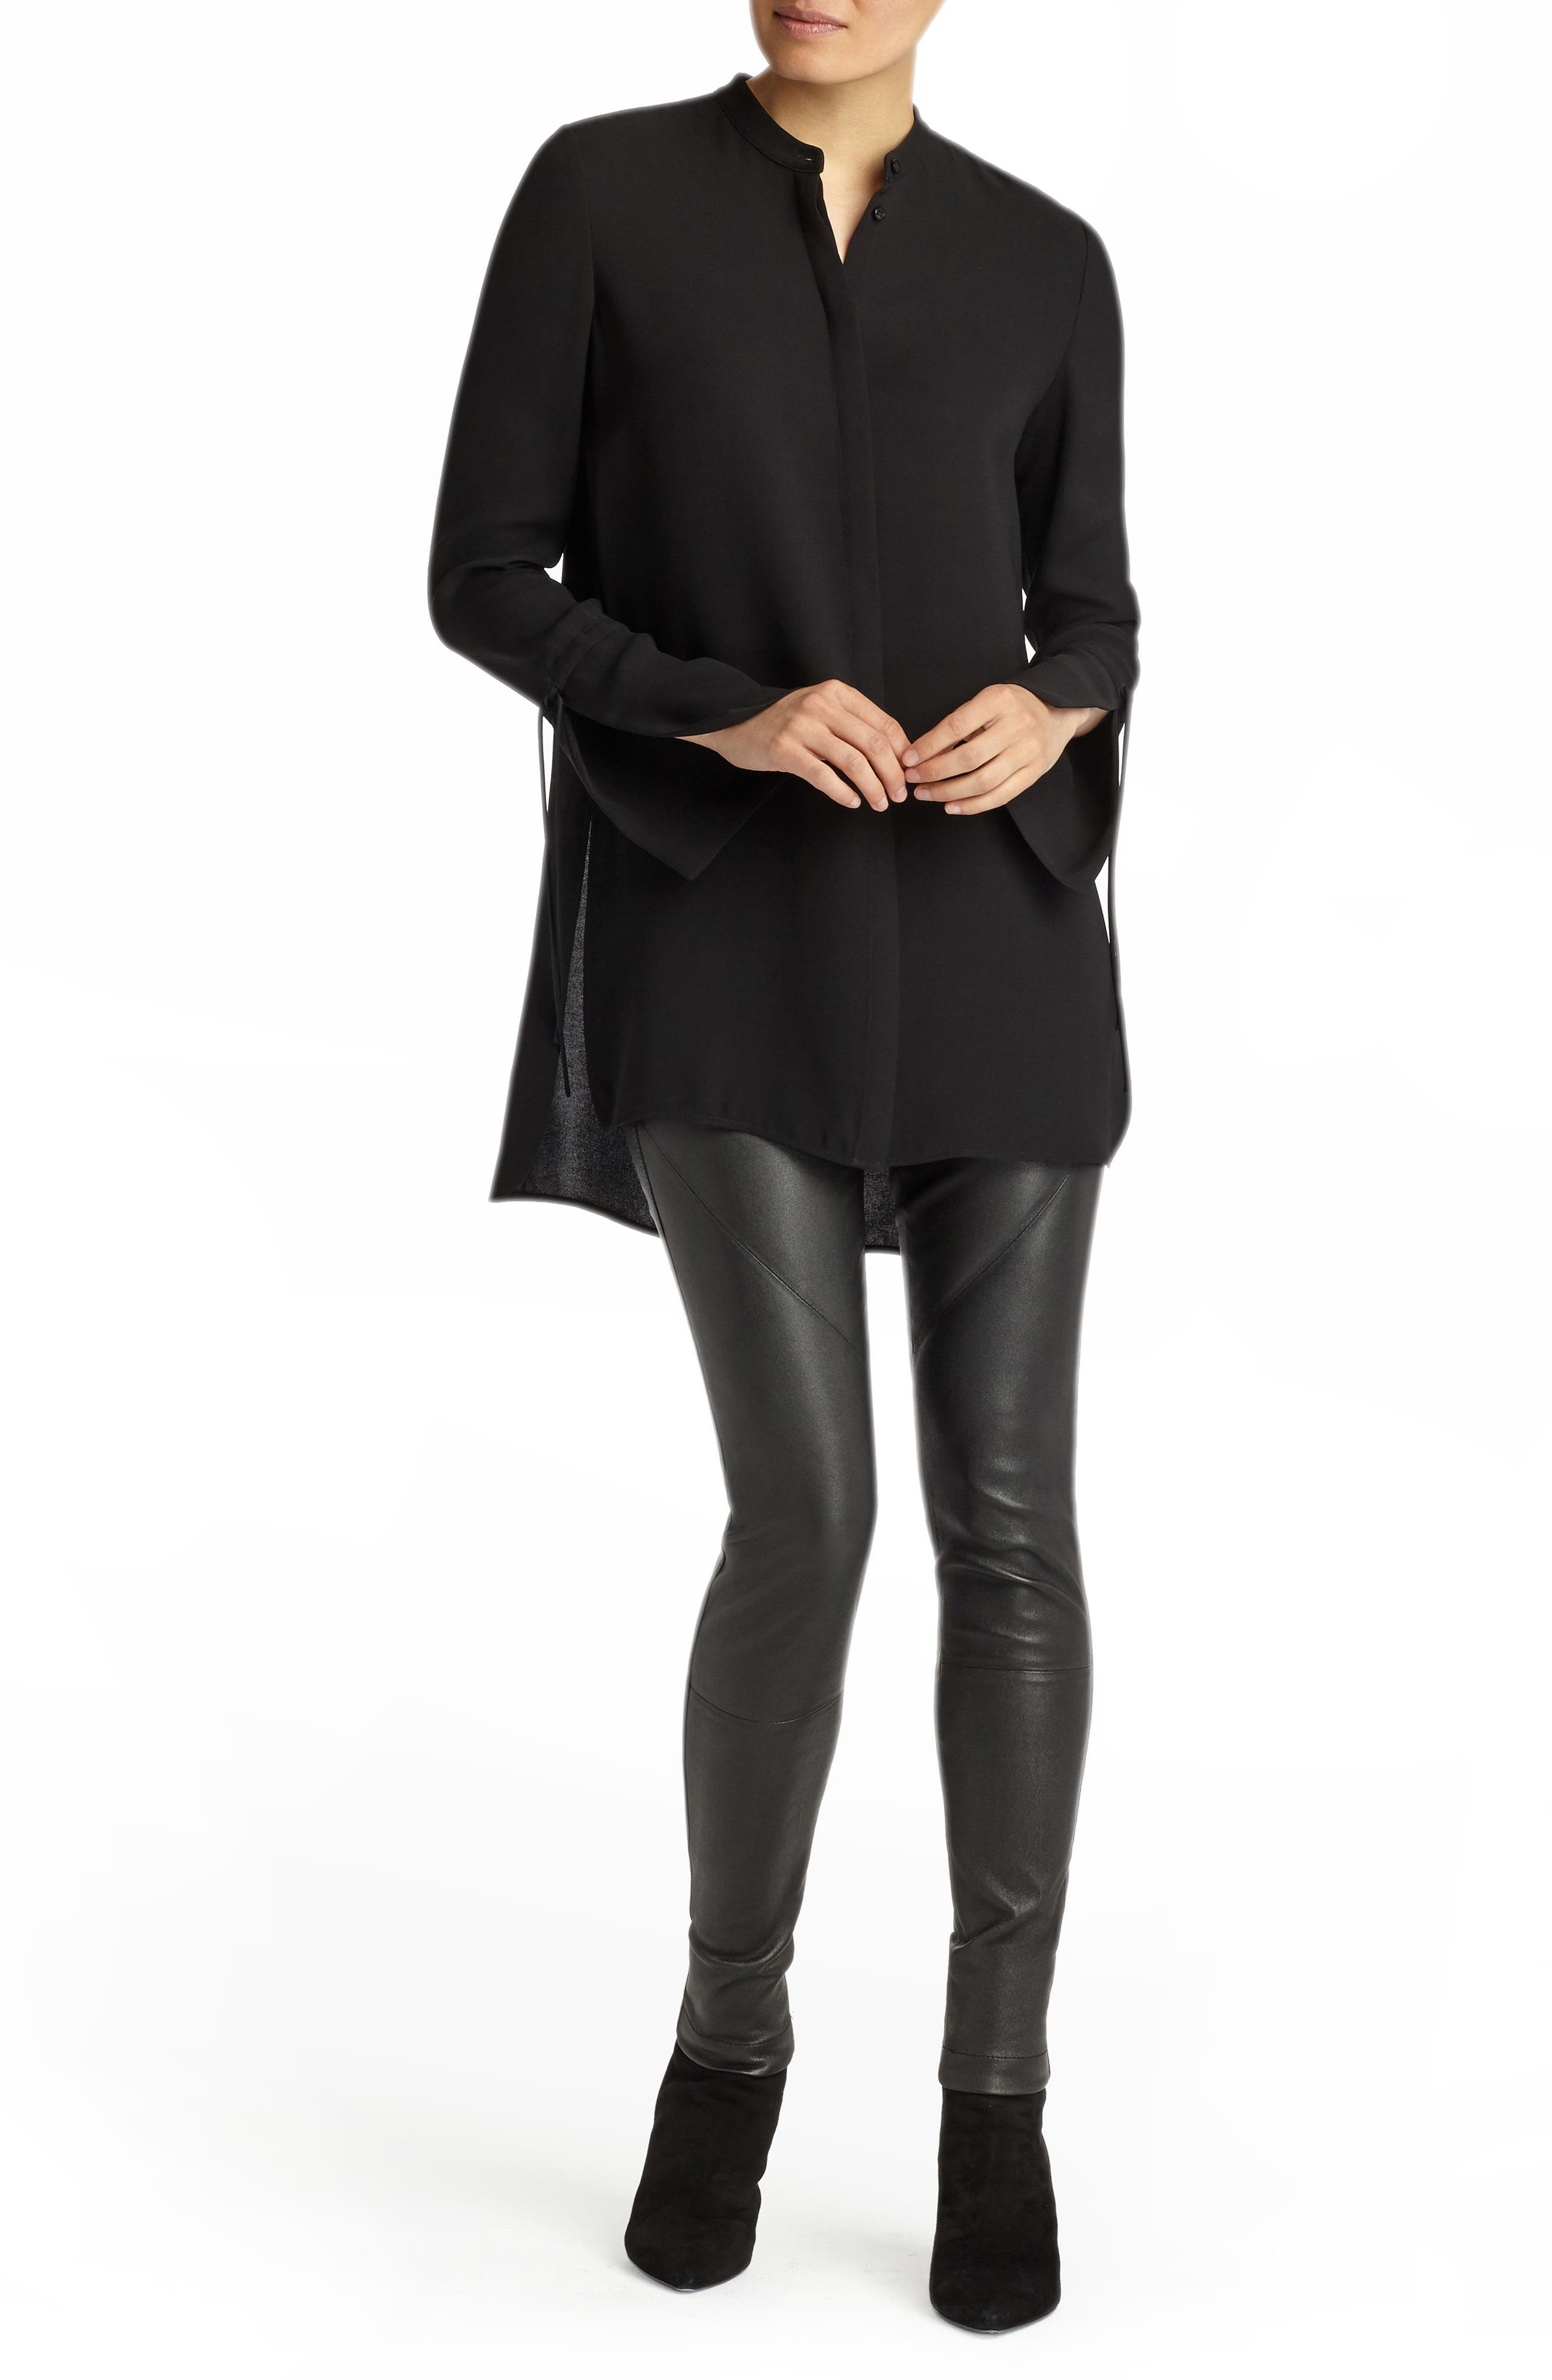 Desra Silk Blouse,                             Alternate thumbnail 5, color,                             Black